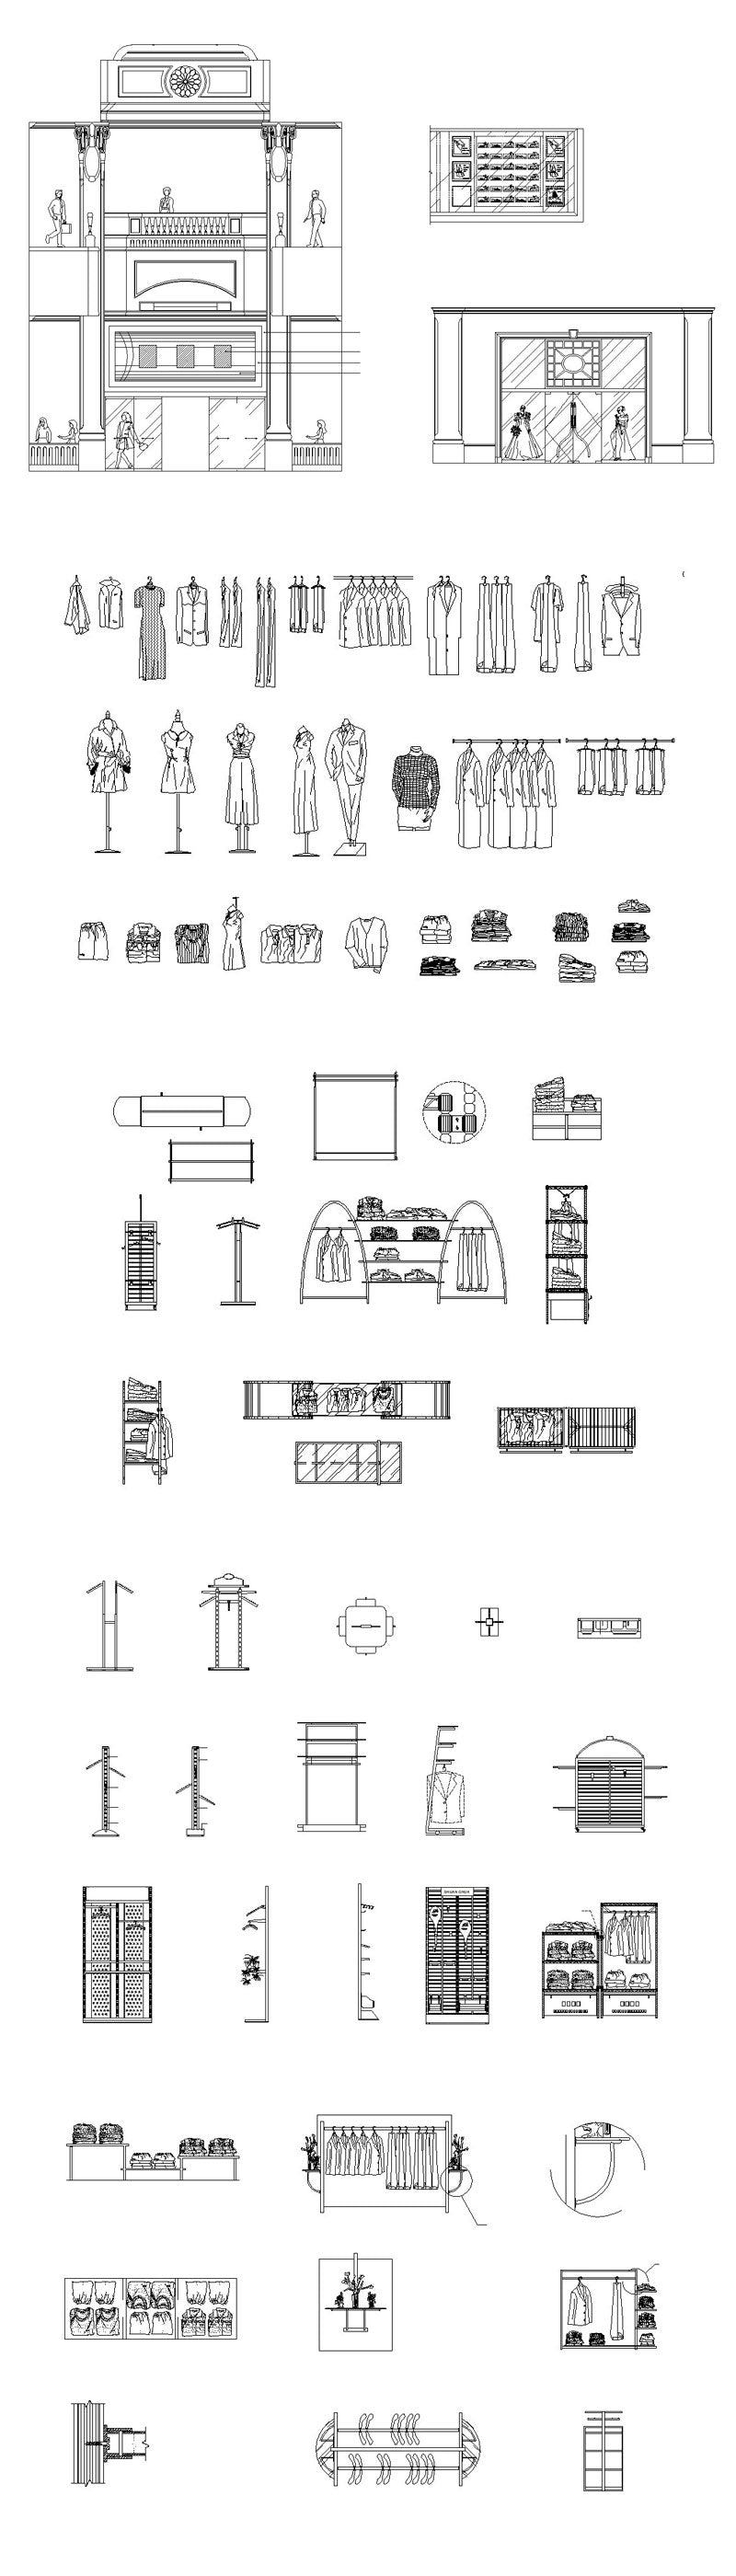 ★【Store CAD Design Blocks,Details Elevation Collection】@Boutiques, Clothing stores, women's wear, men's wear, store design-Autocad Blocks,Drawings,CAD Details,Elevation